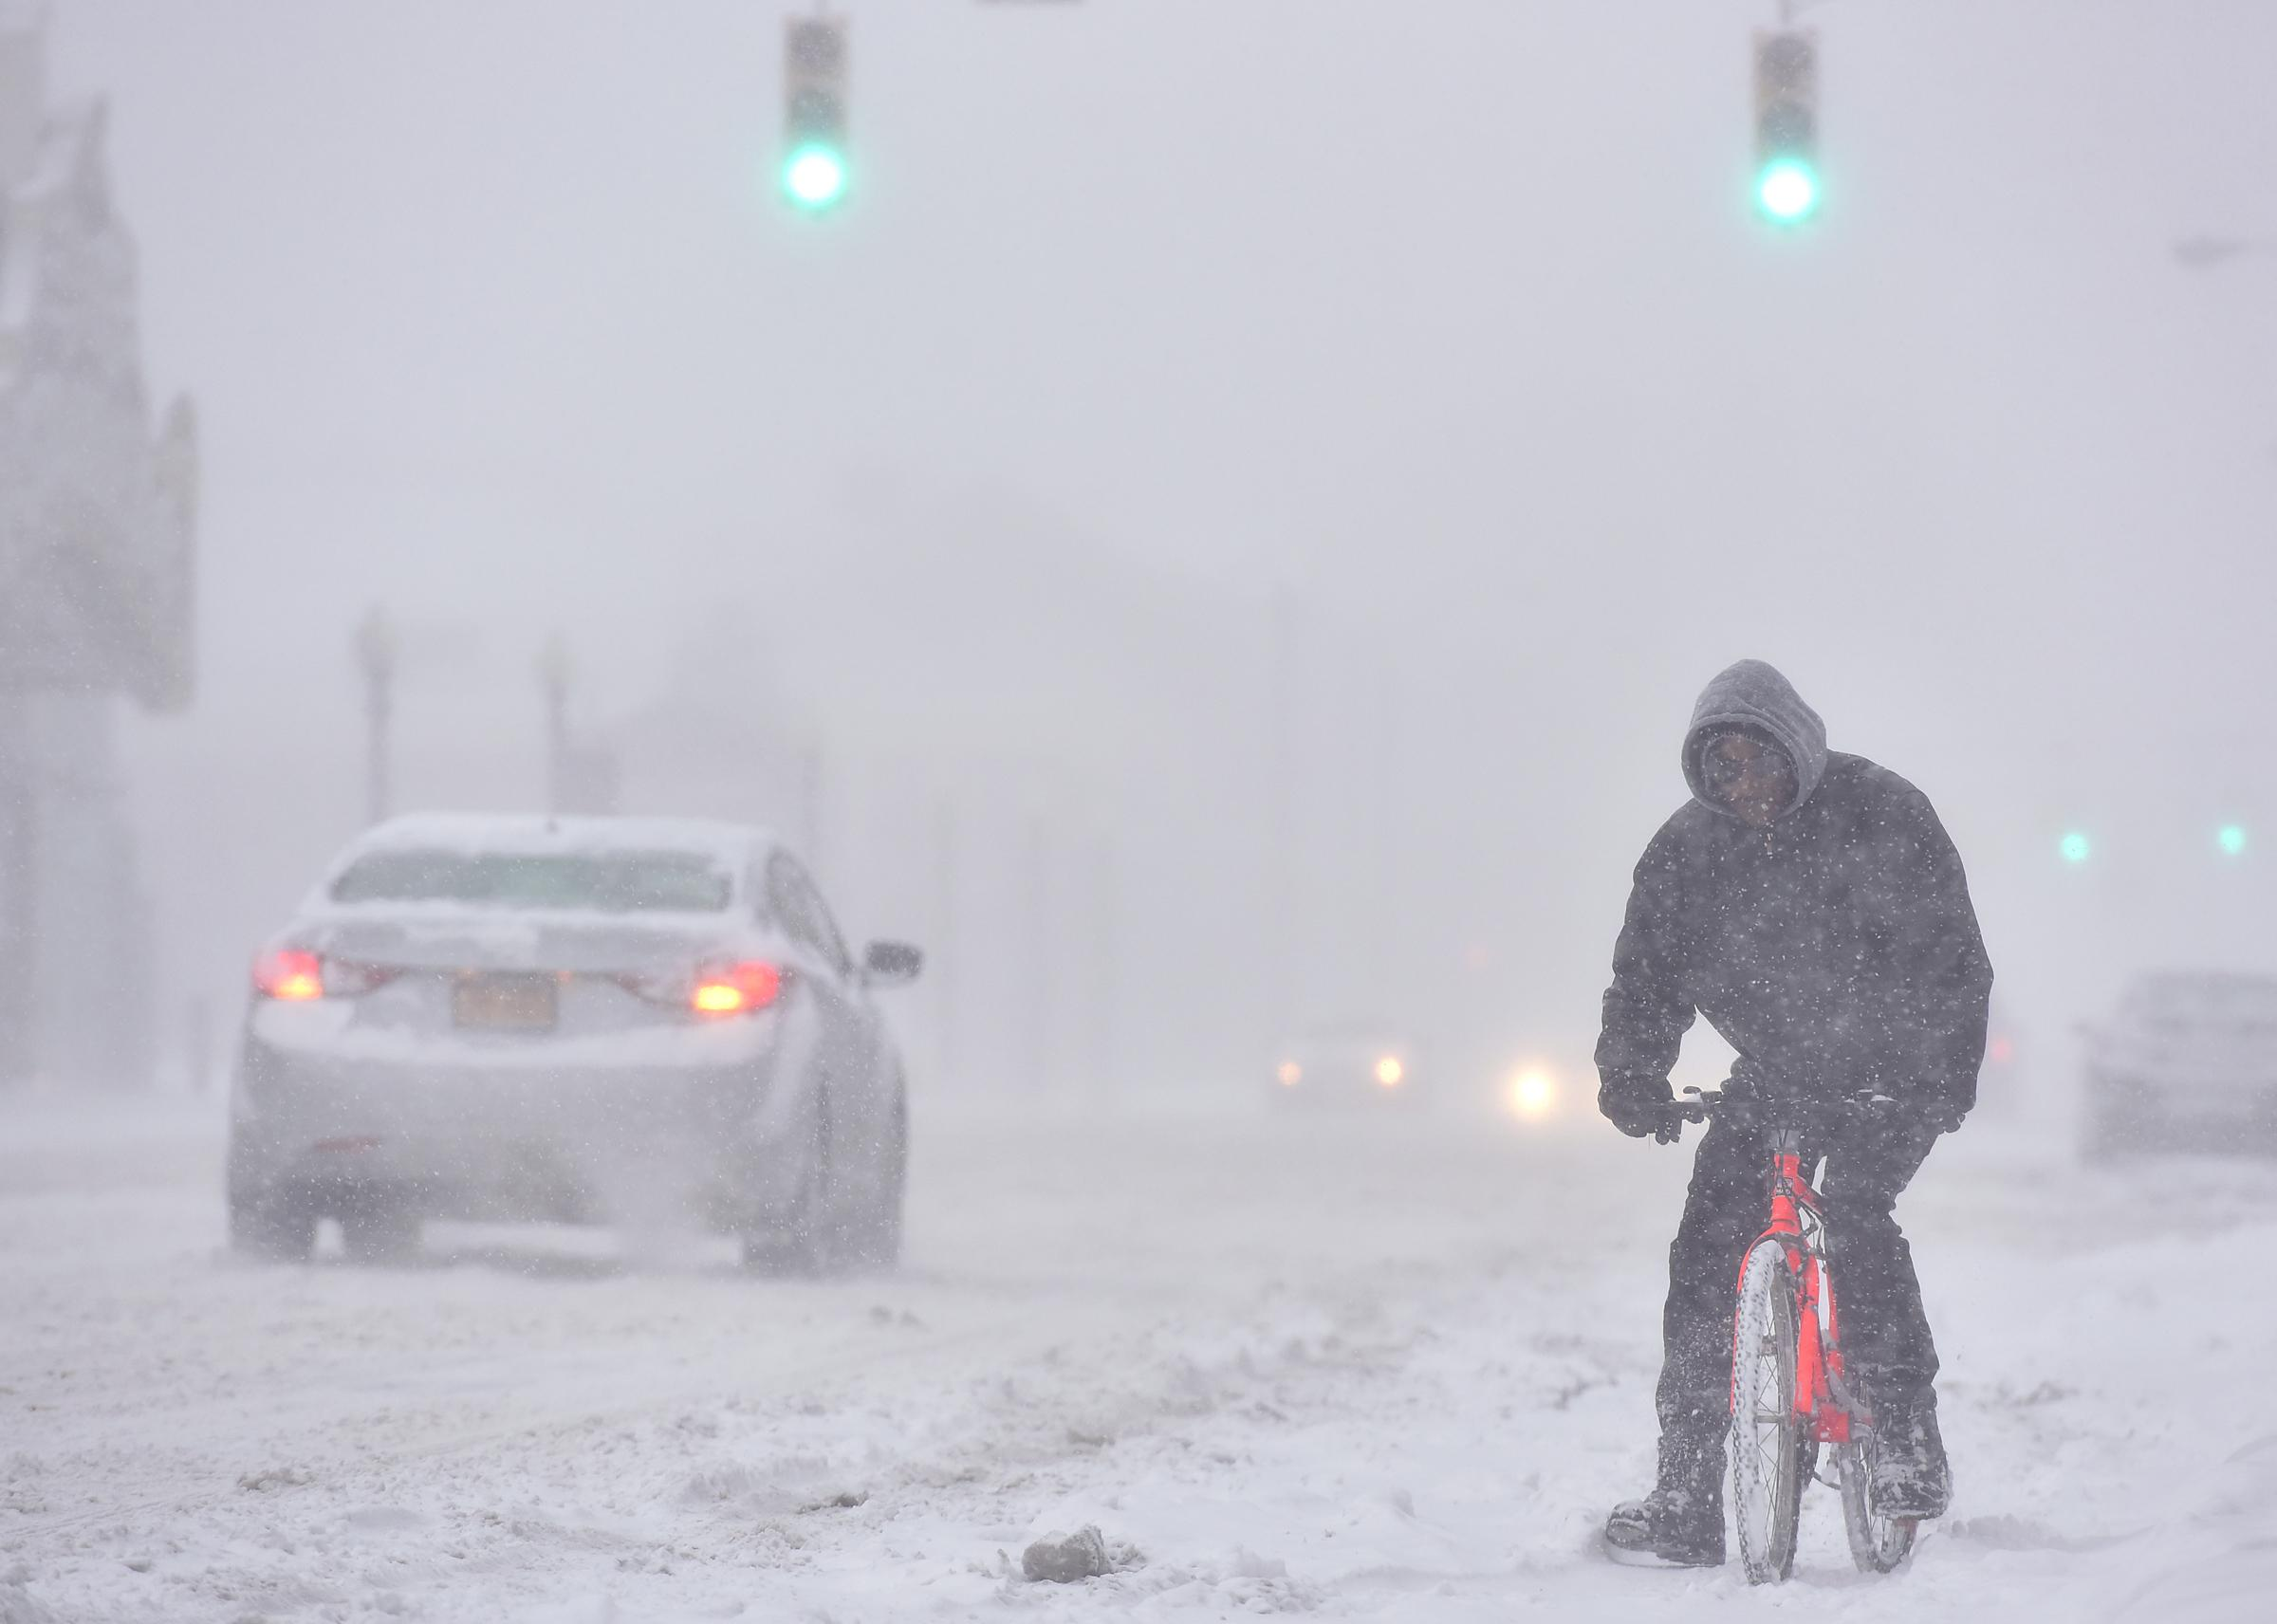 Big Snowstorm Could Hit East Coast Ohio Valley The